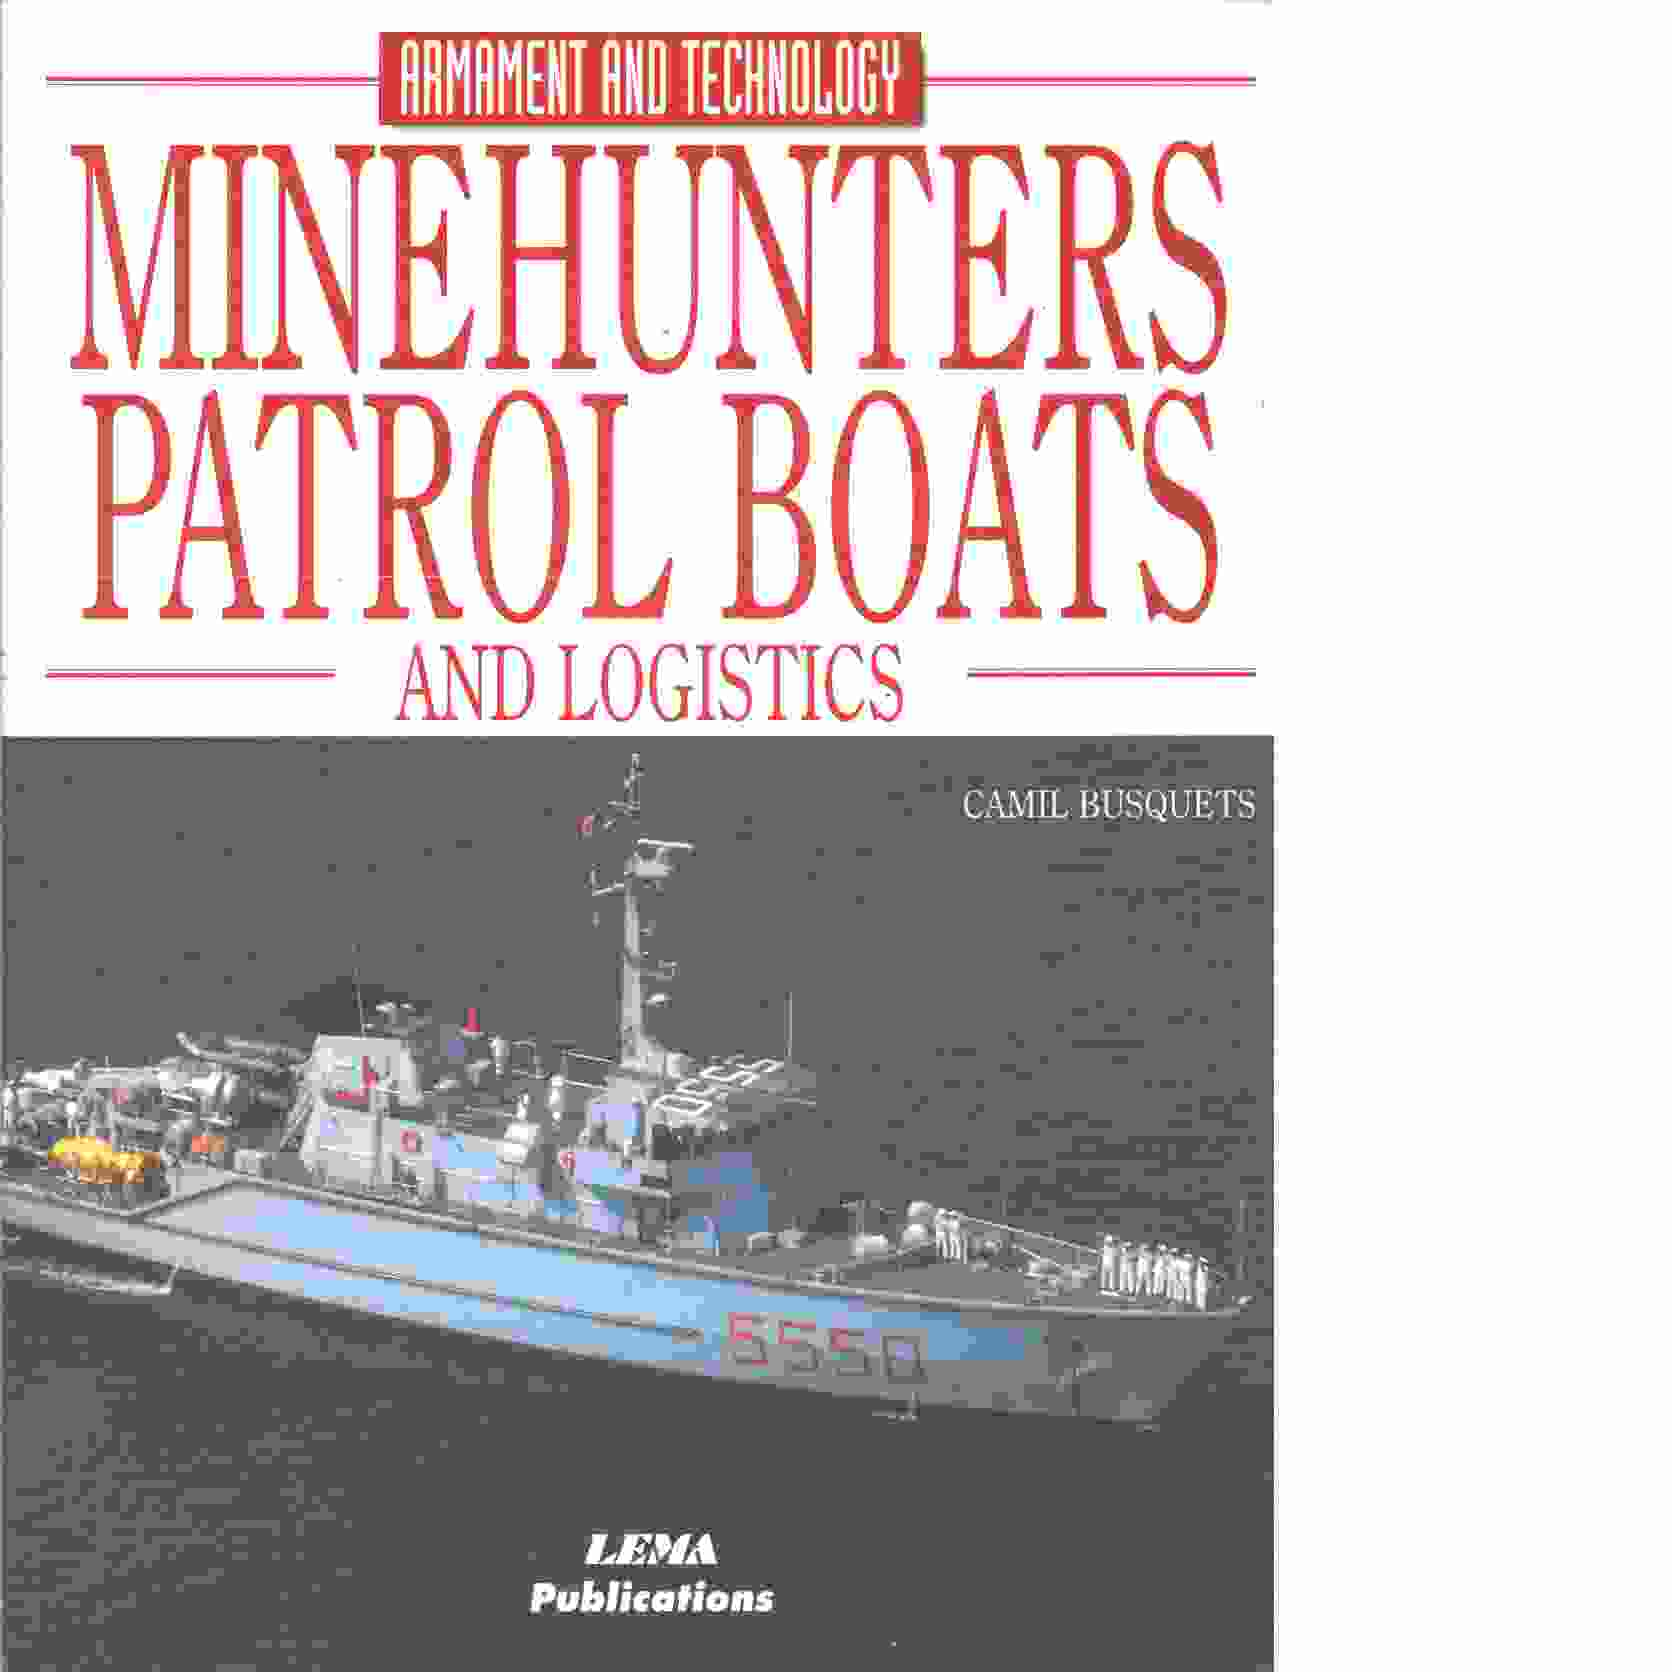 Minehunters, Patrol Boats and Logistics - Red.